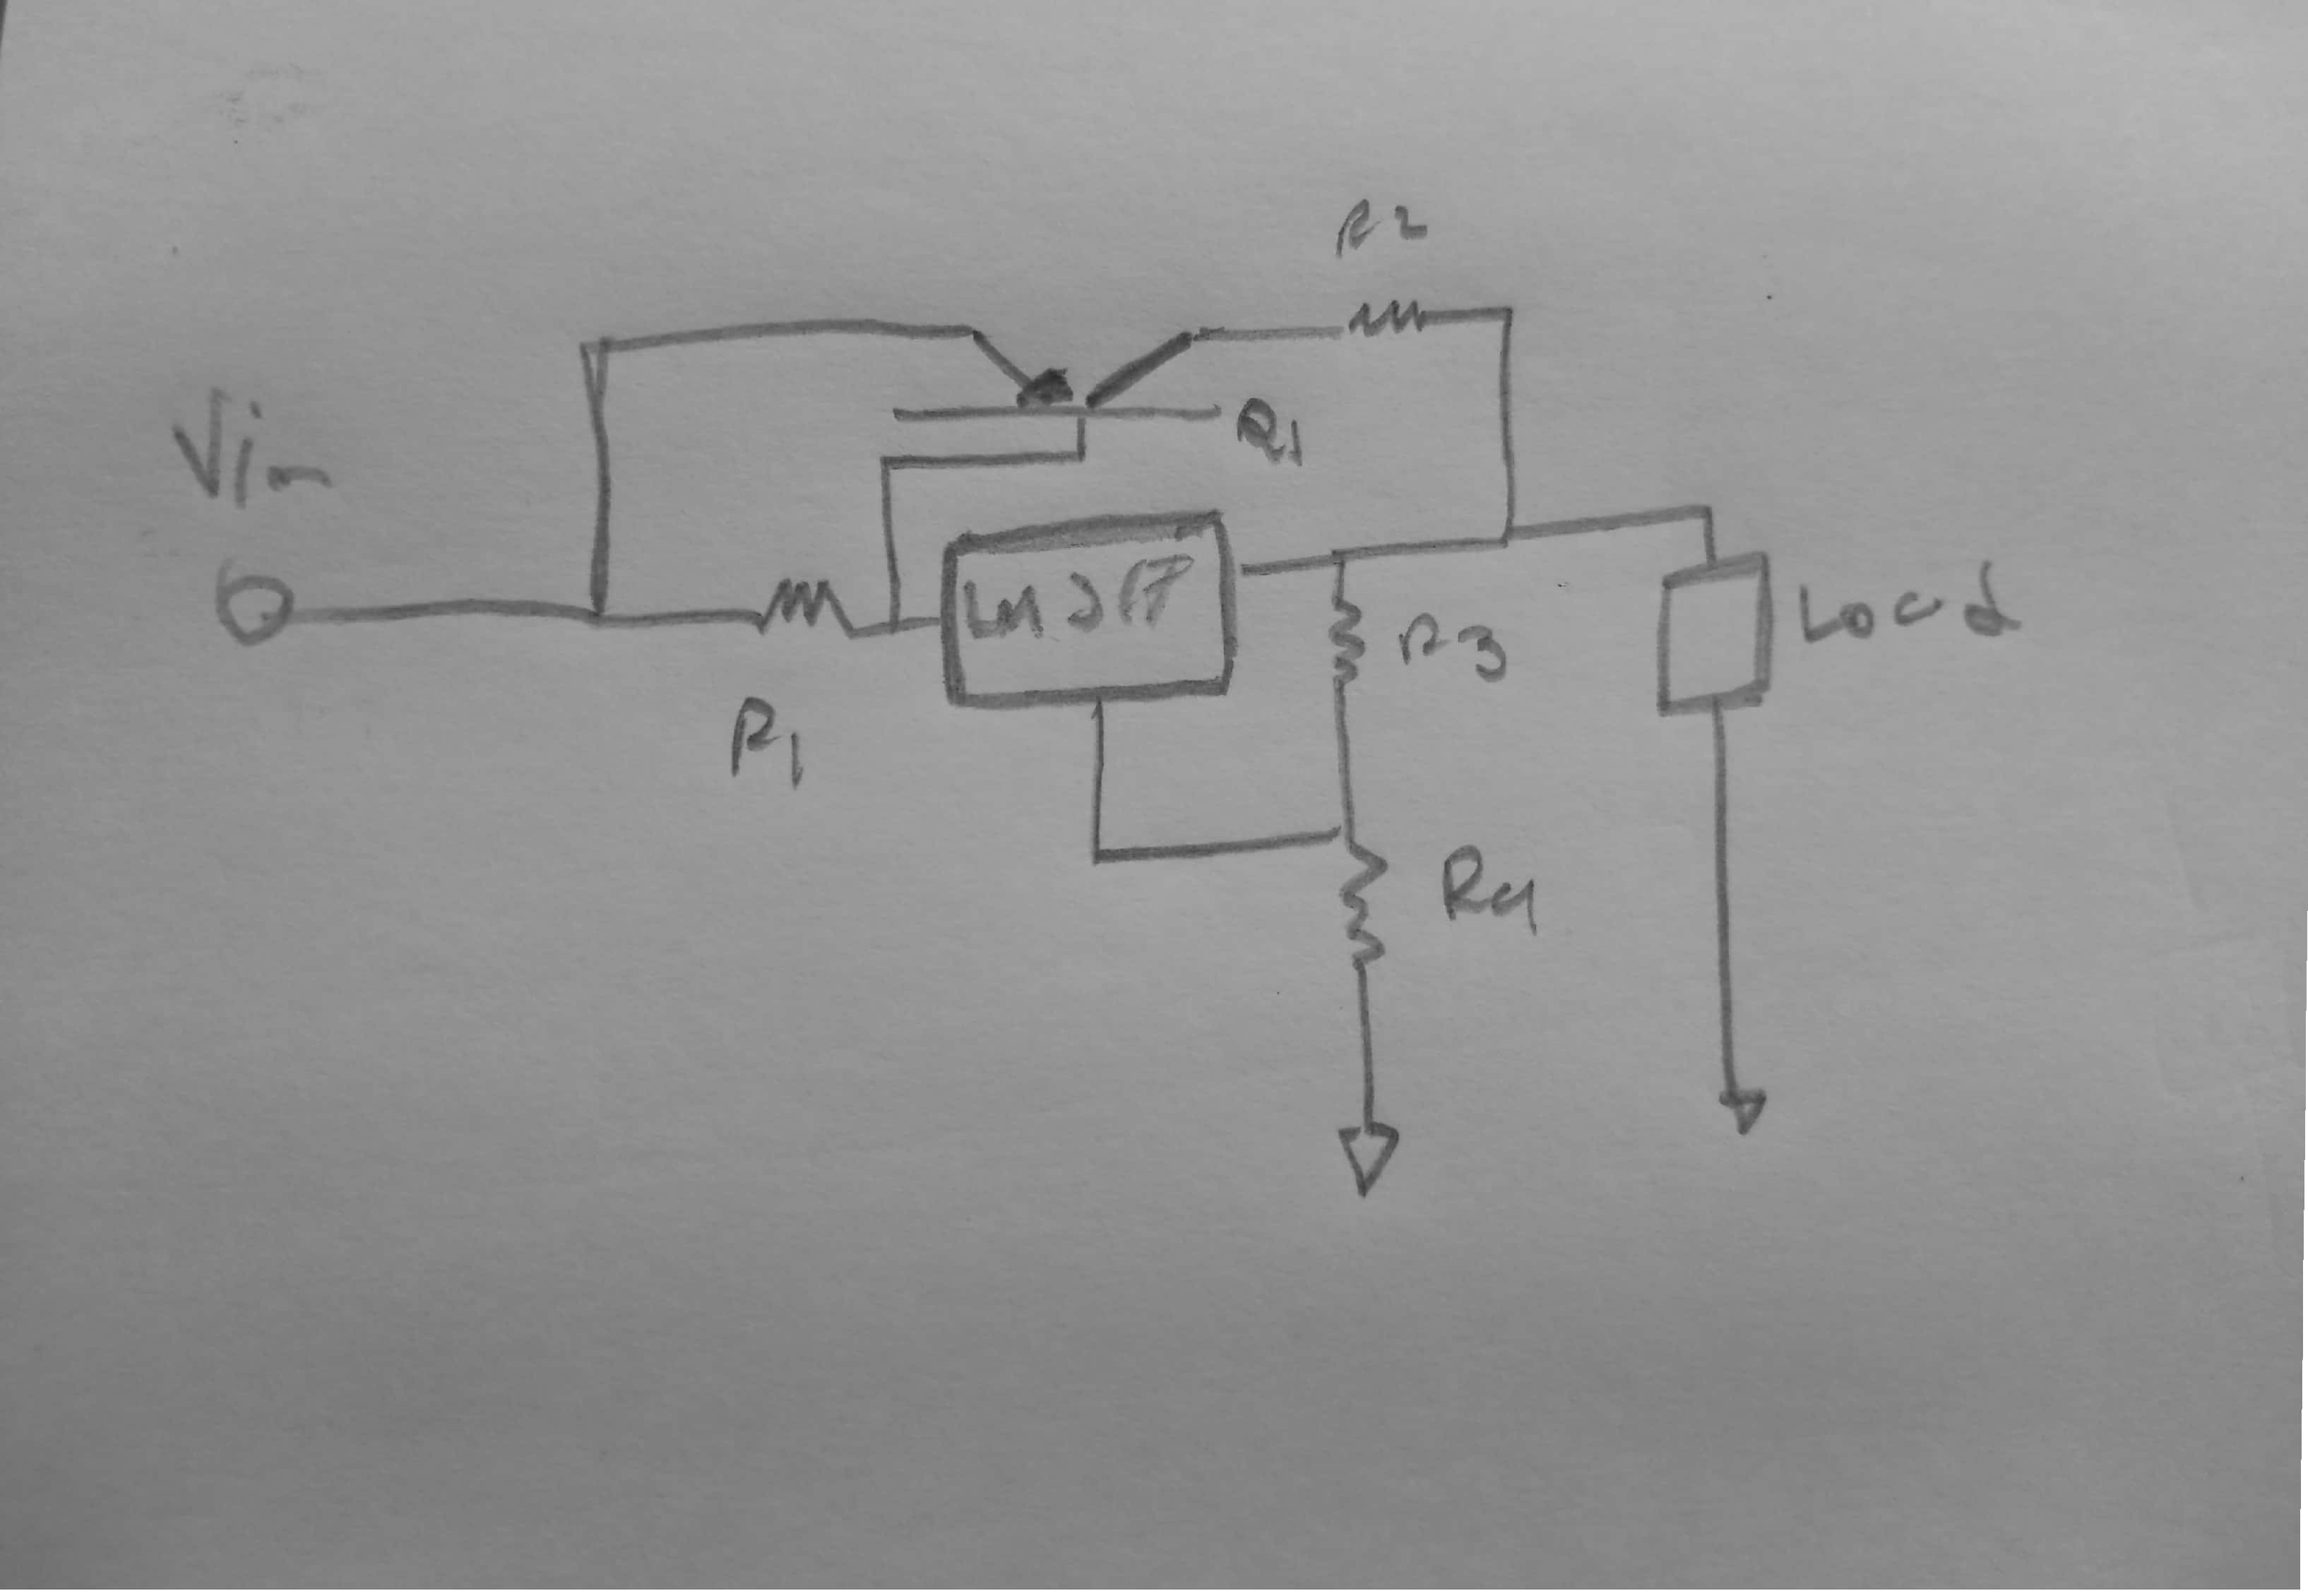 Diy Do It Yourself Circuitlab Single Supply Simple Opamp Gain Circuit For Mic Test On Quoted By 1442781 1442783 1442792